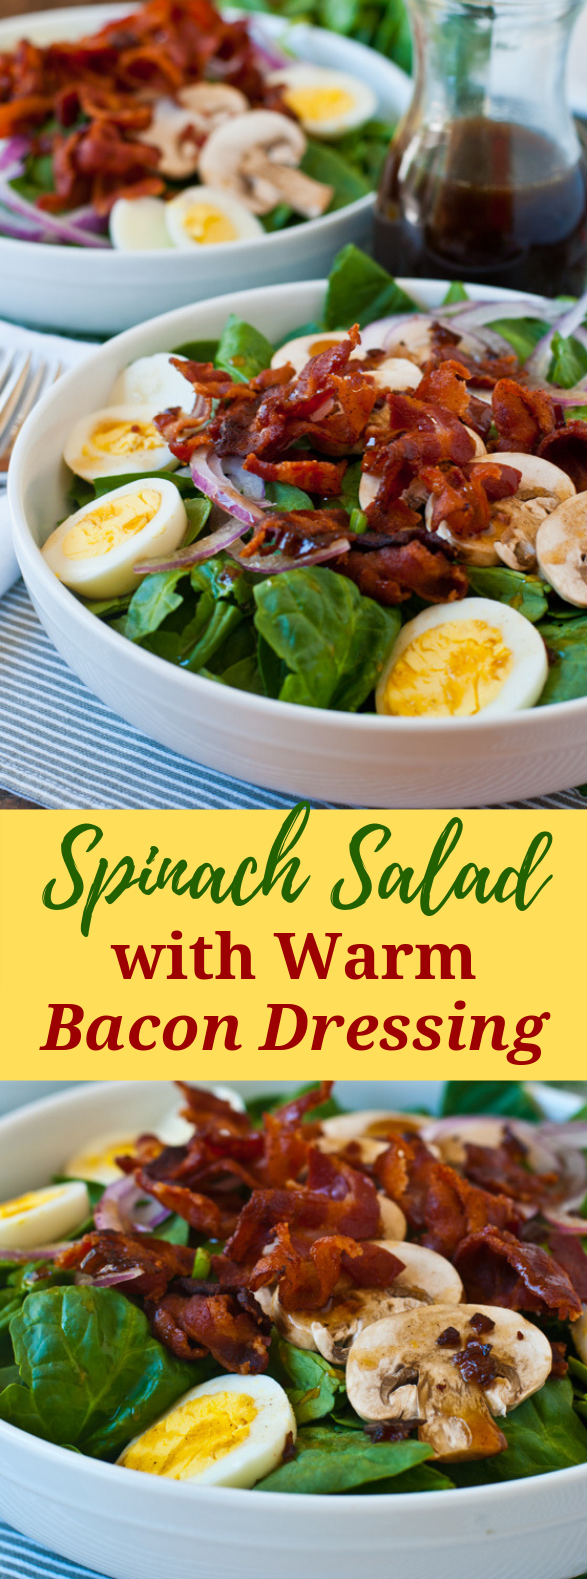 Spinach Salad with Warm Bacon Dressing #diet #glutenfree